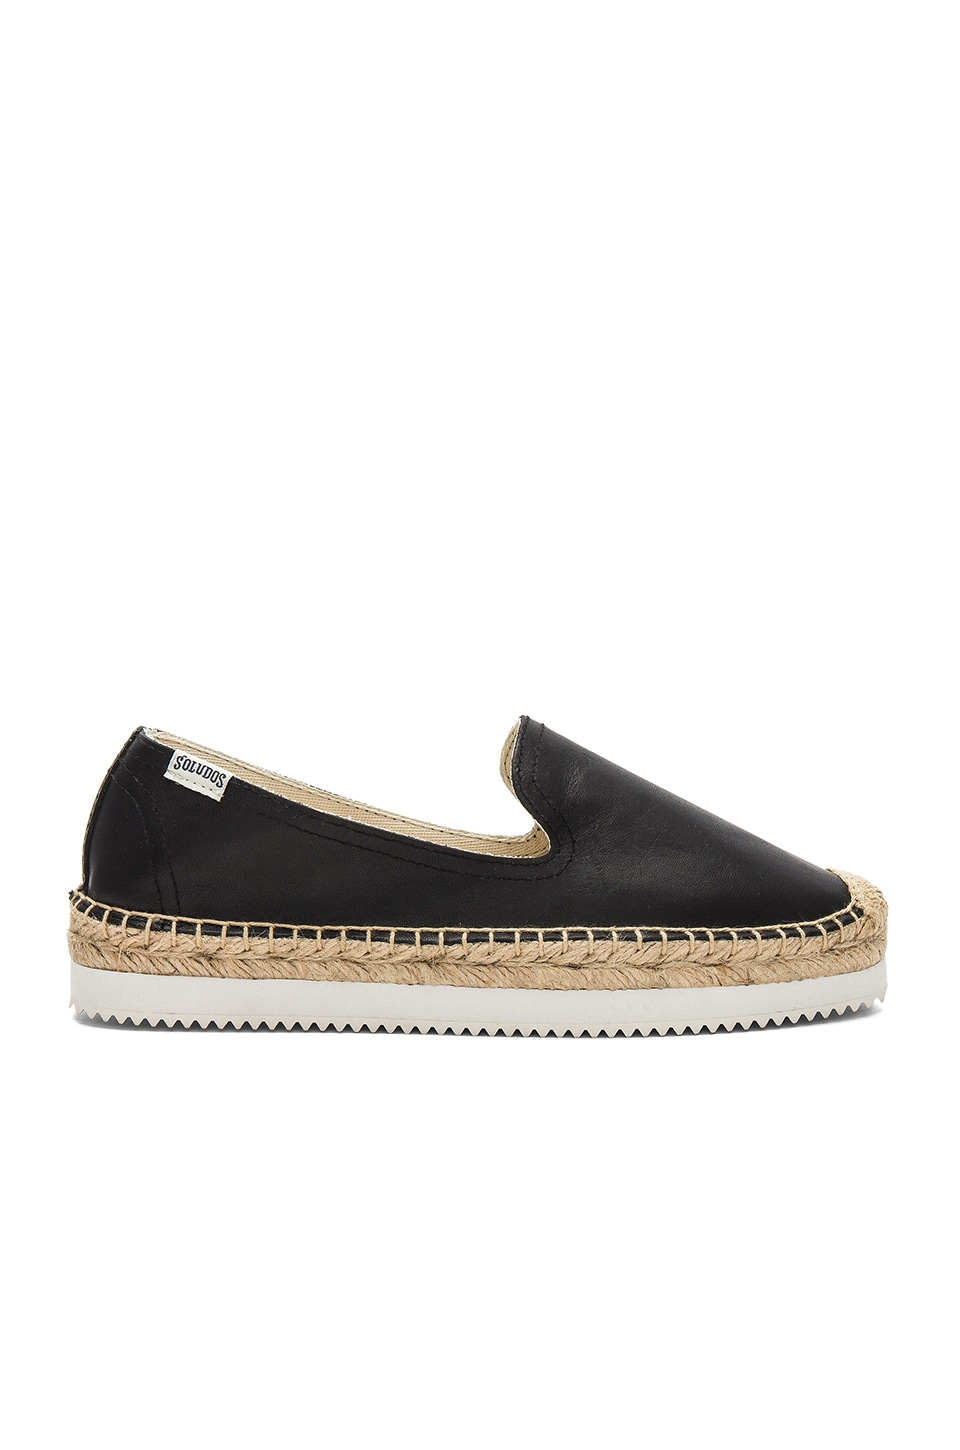 Soludos Platform Mix Sole Smoking Slipper in Black